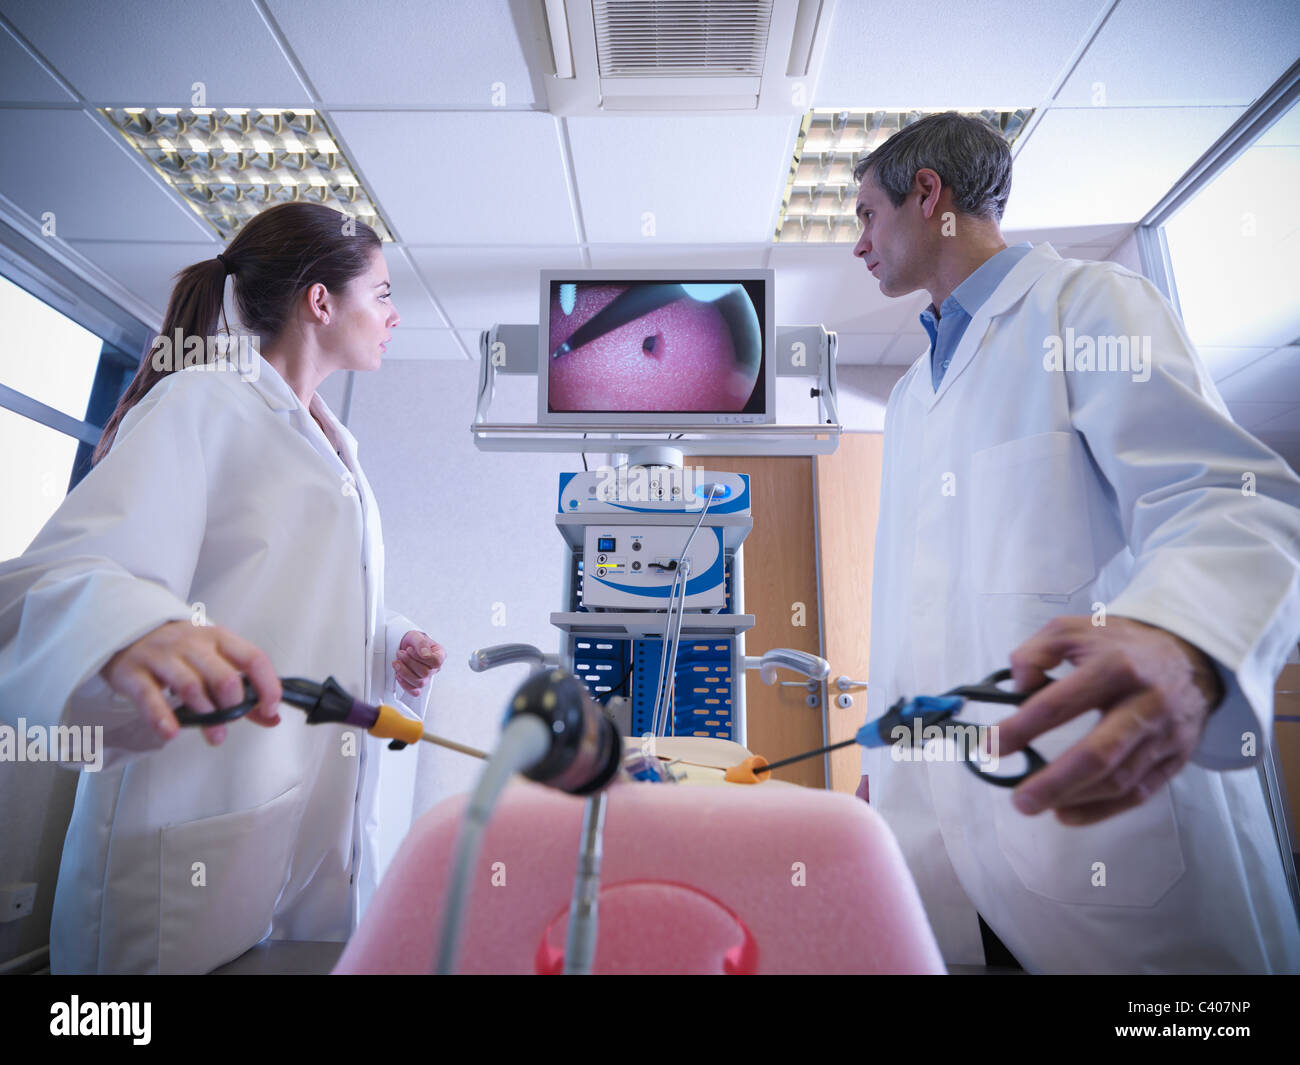 Scientists practice with simulator - Stock Image